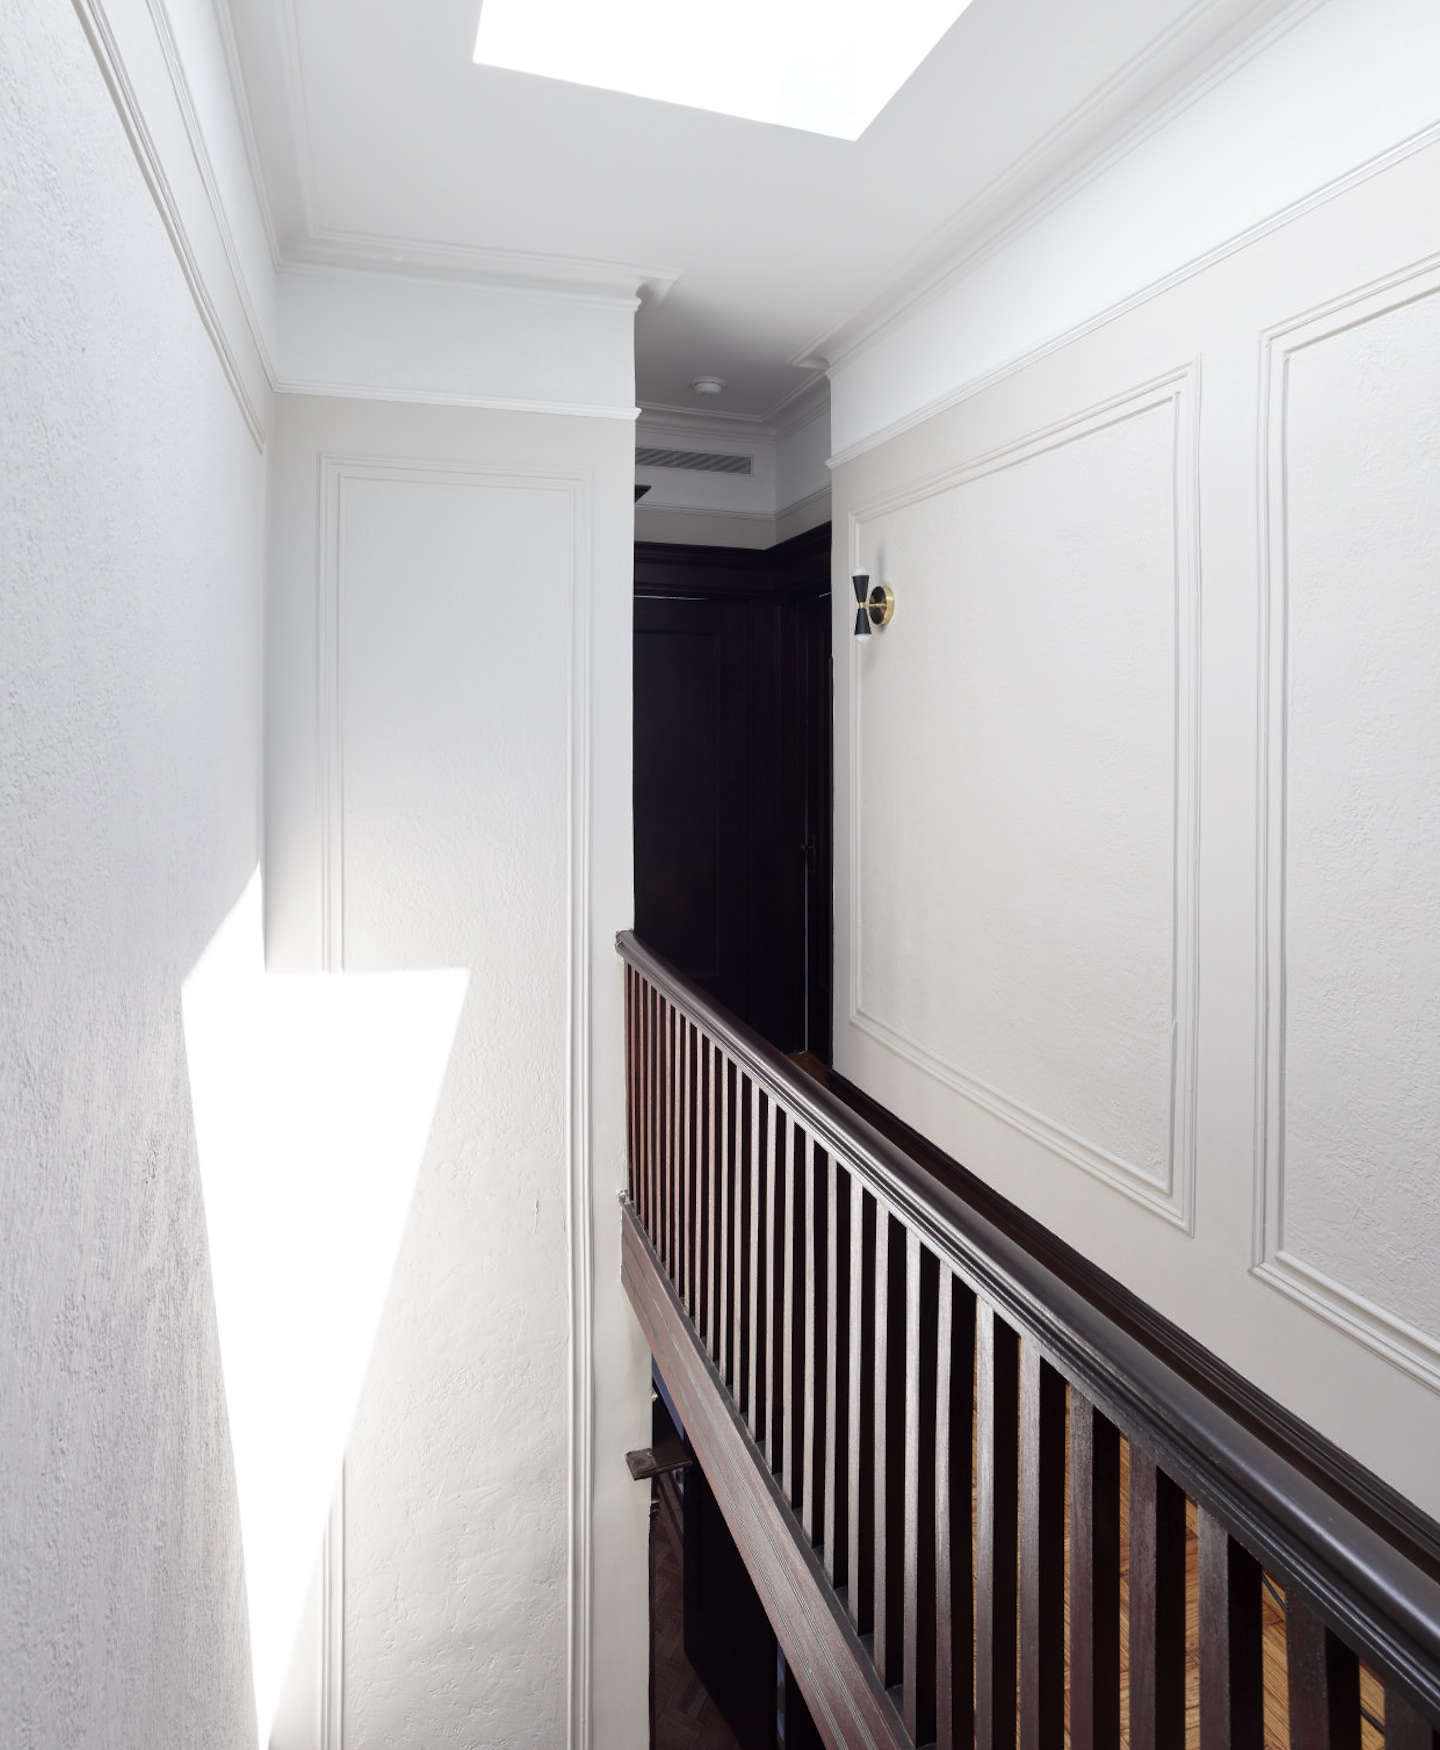 """Up to the top floor, the least traditional of the three. """"The sense of formality slowly fades away as you move upwards through the house, through the introduction of raw materials and more fluid shapes,"""" Spain says."""